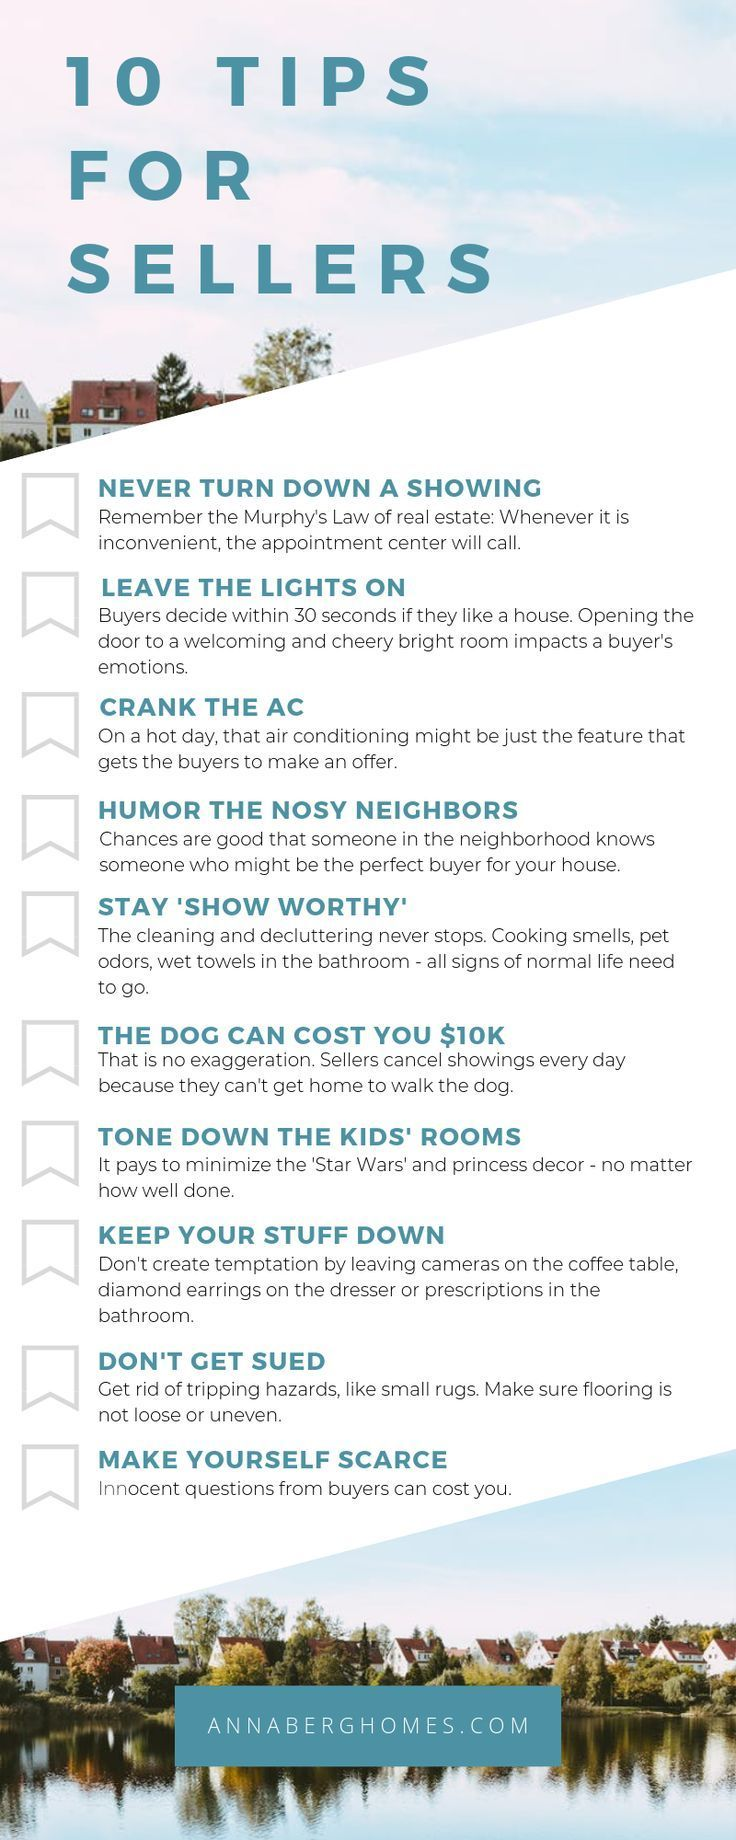 Keep these 10 tips in mind when selling your home! If you